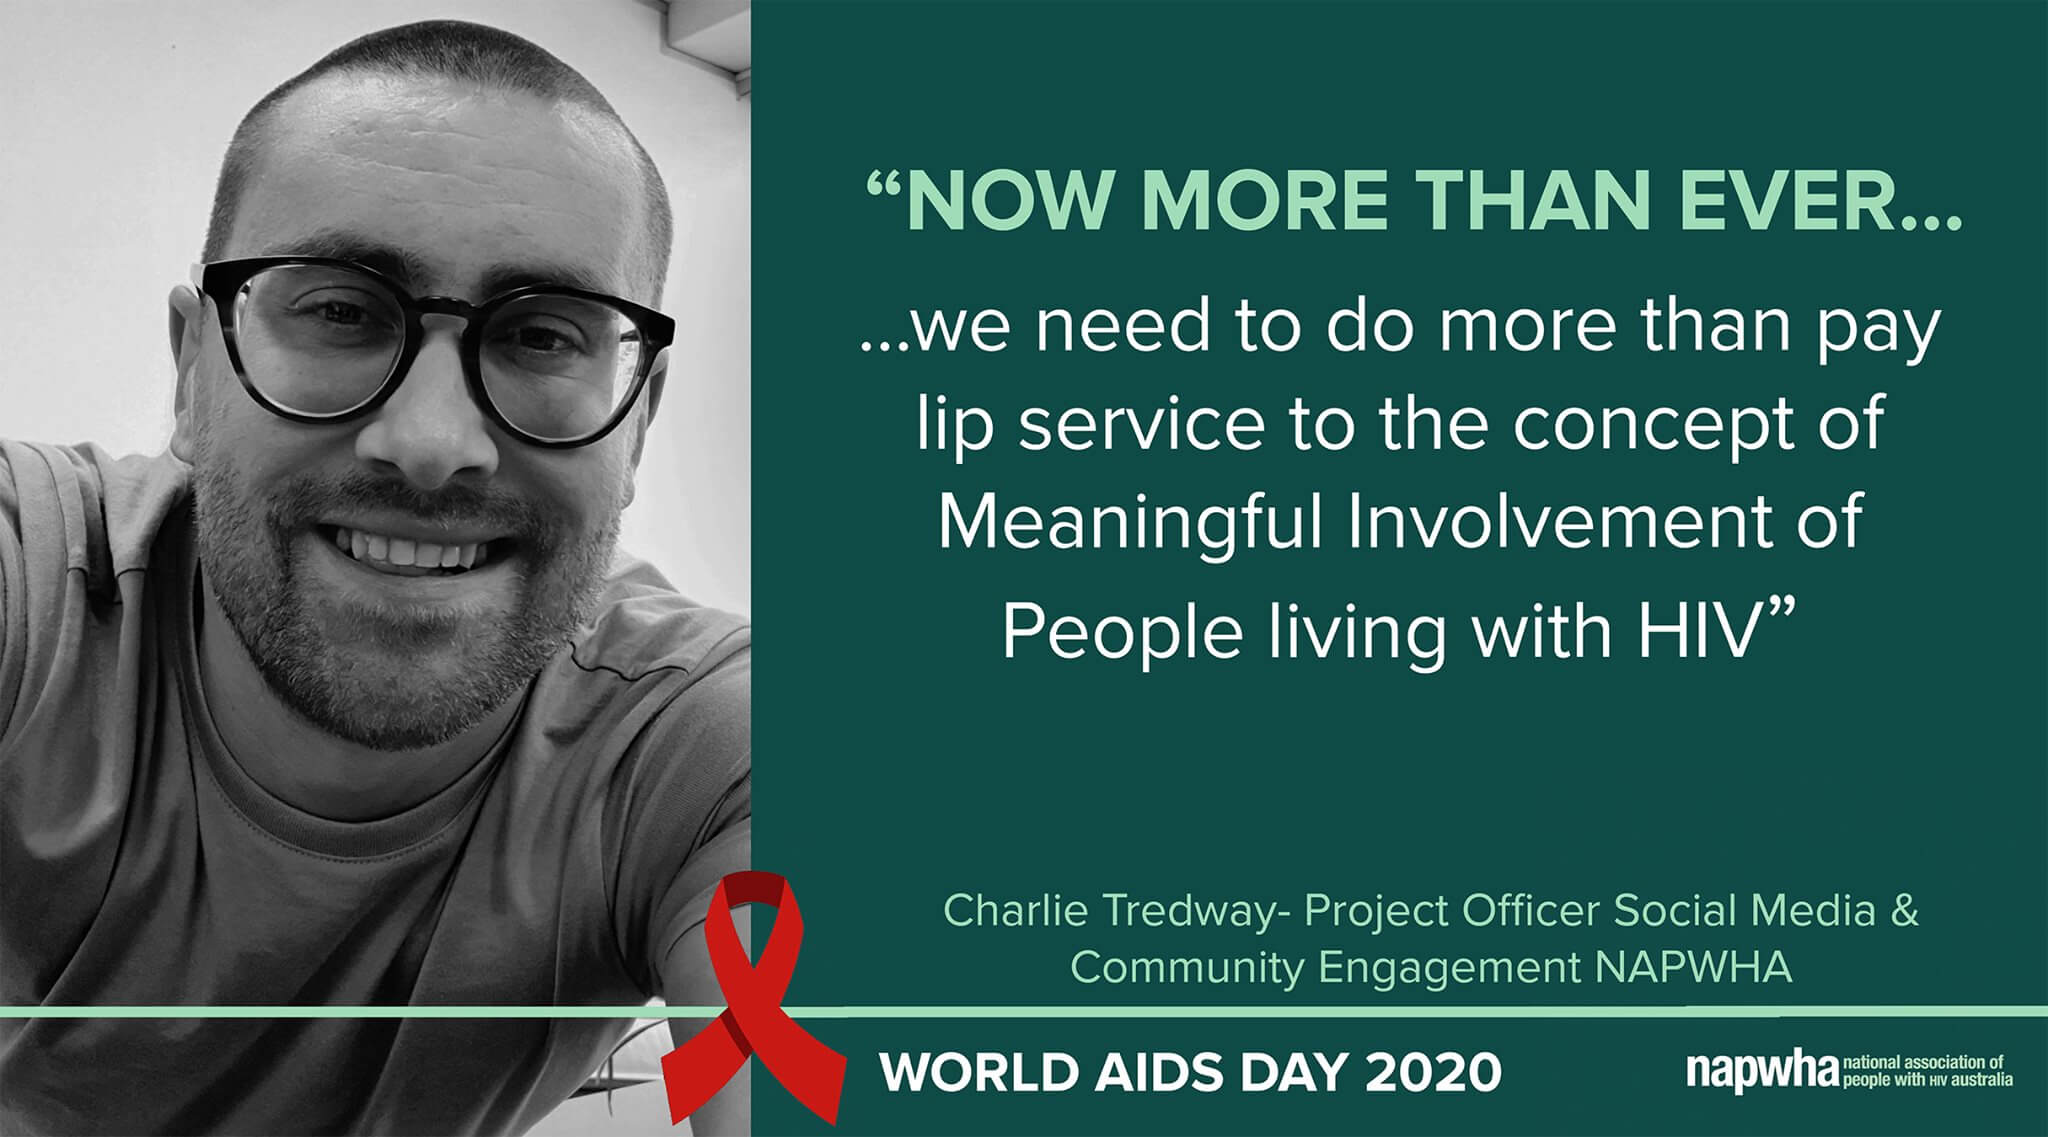 Charlie Tredway, NAPWHA Project Officer for Social Media and Community Engagement provides a World AIDS Day 2020 message